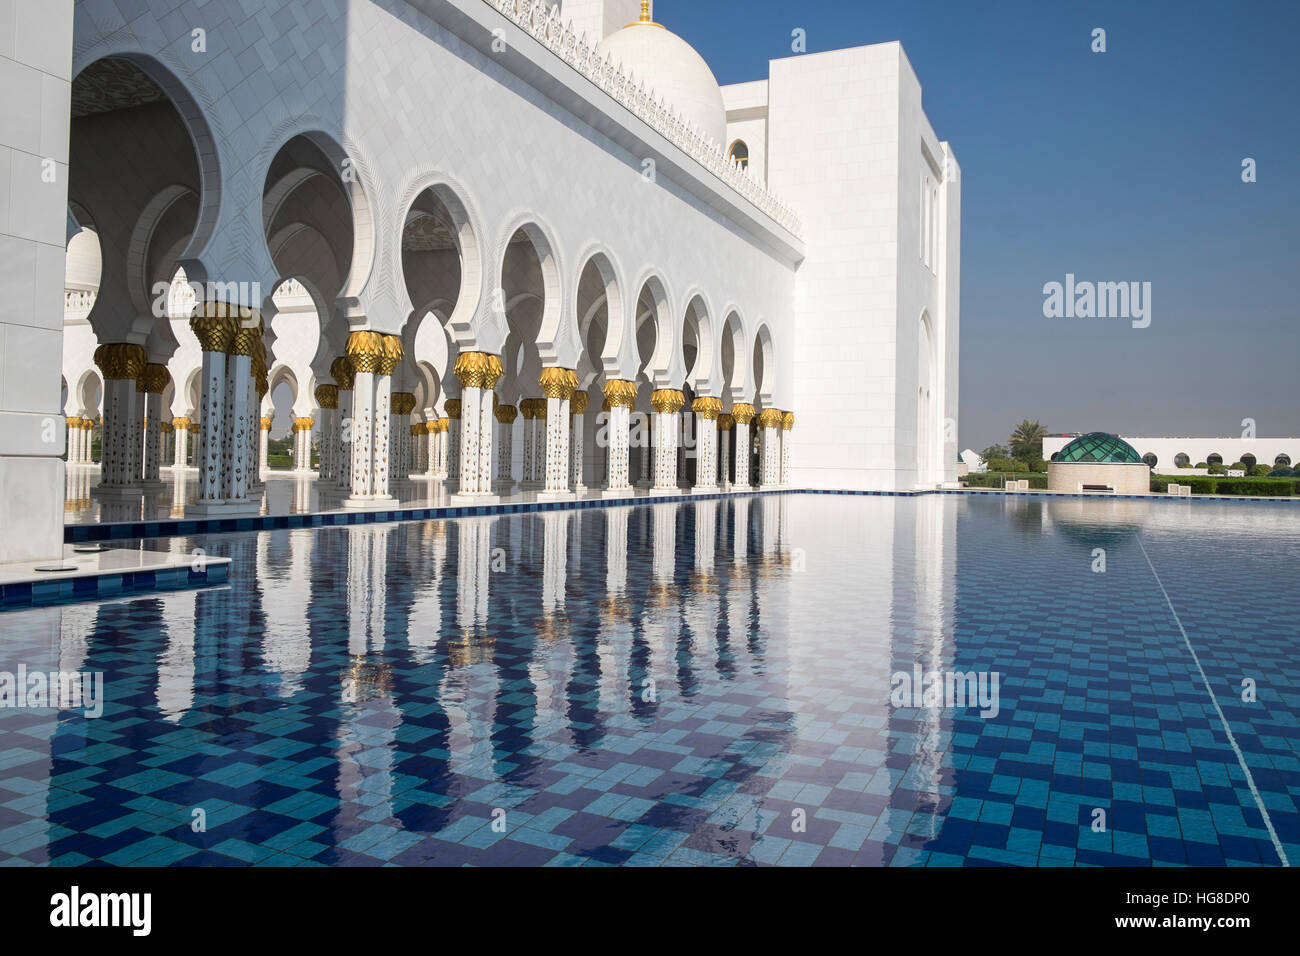 Reflecting pool at Sheikh Zayed Mosque against clear blue sky - Stock Image